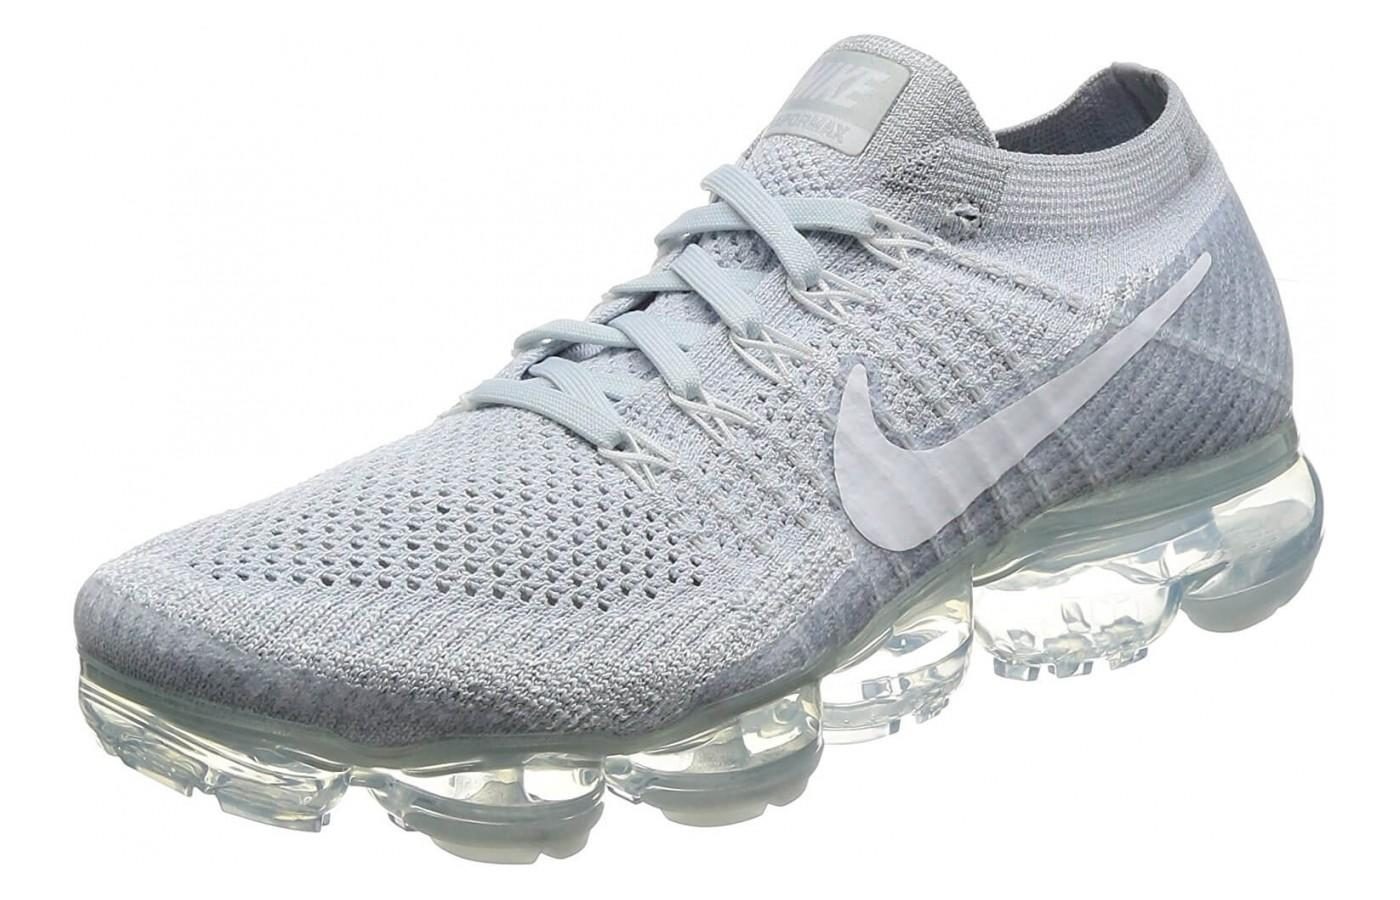 0aeea40e8105a Nike Air Vapormax Flyknit. The platinum coloring and unique design help  this shoe stand out.